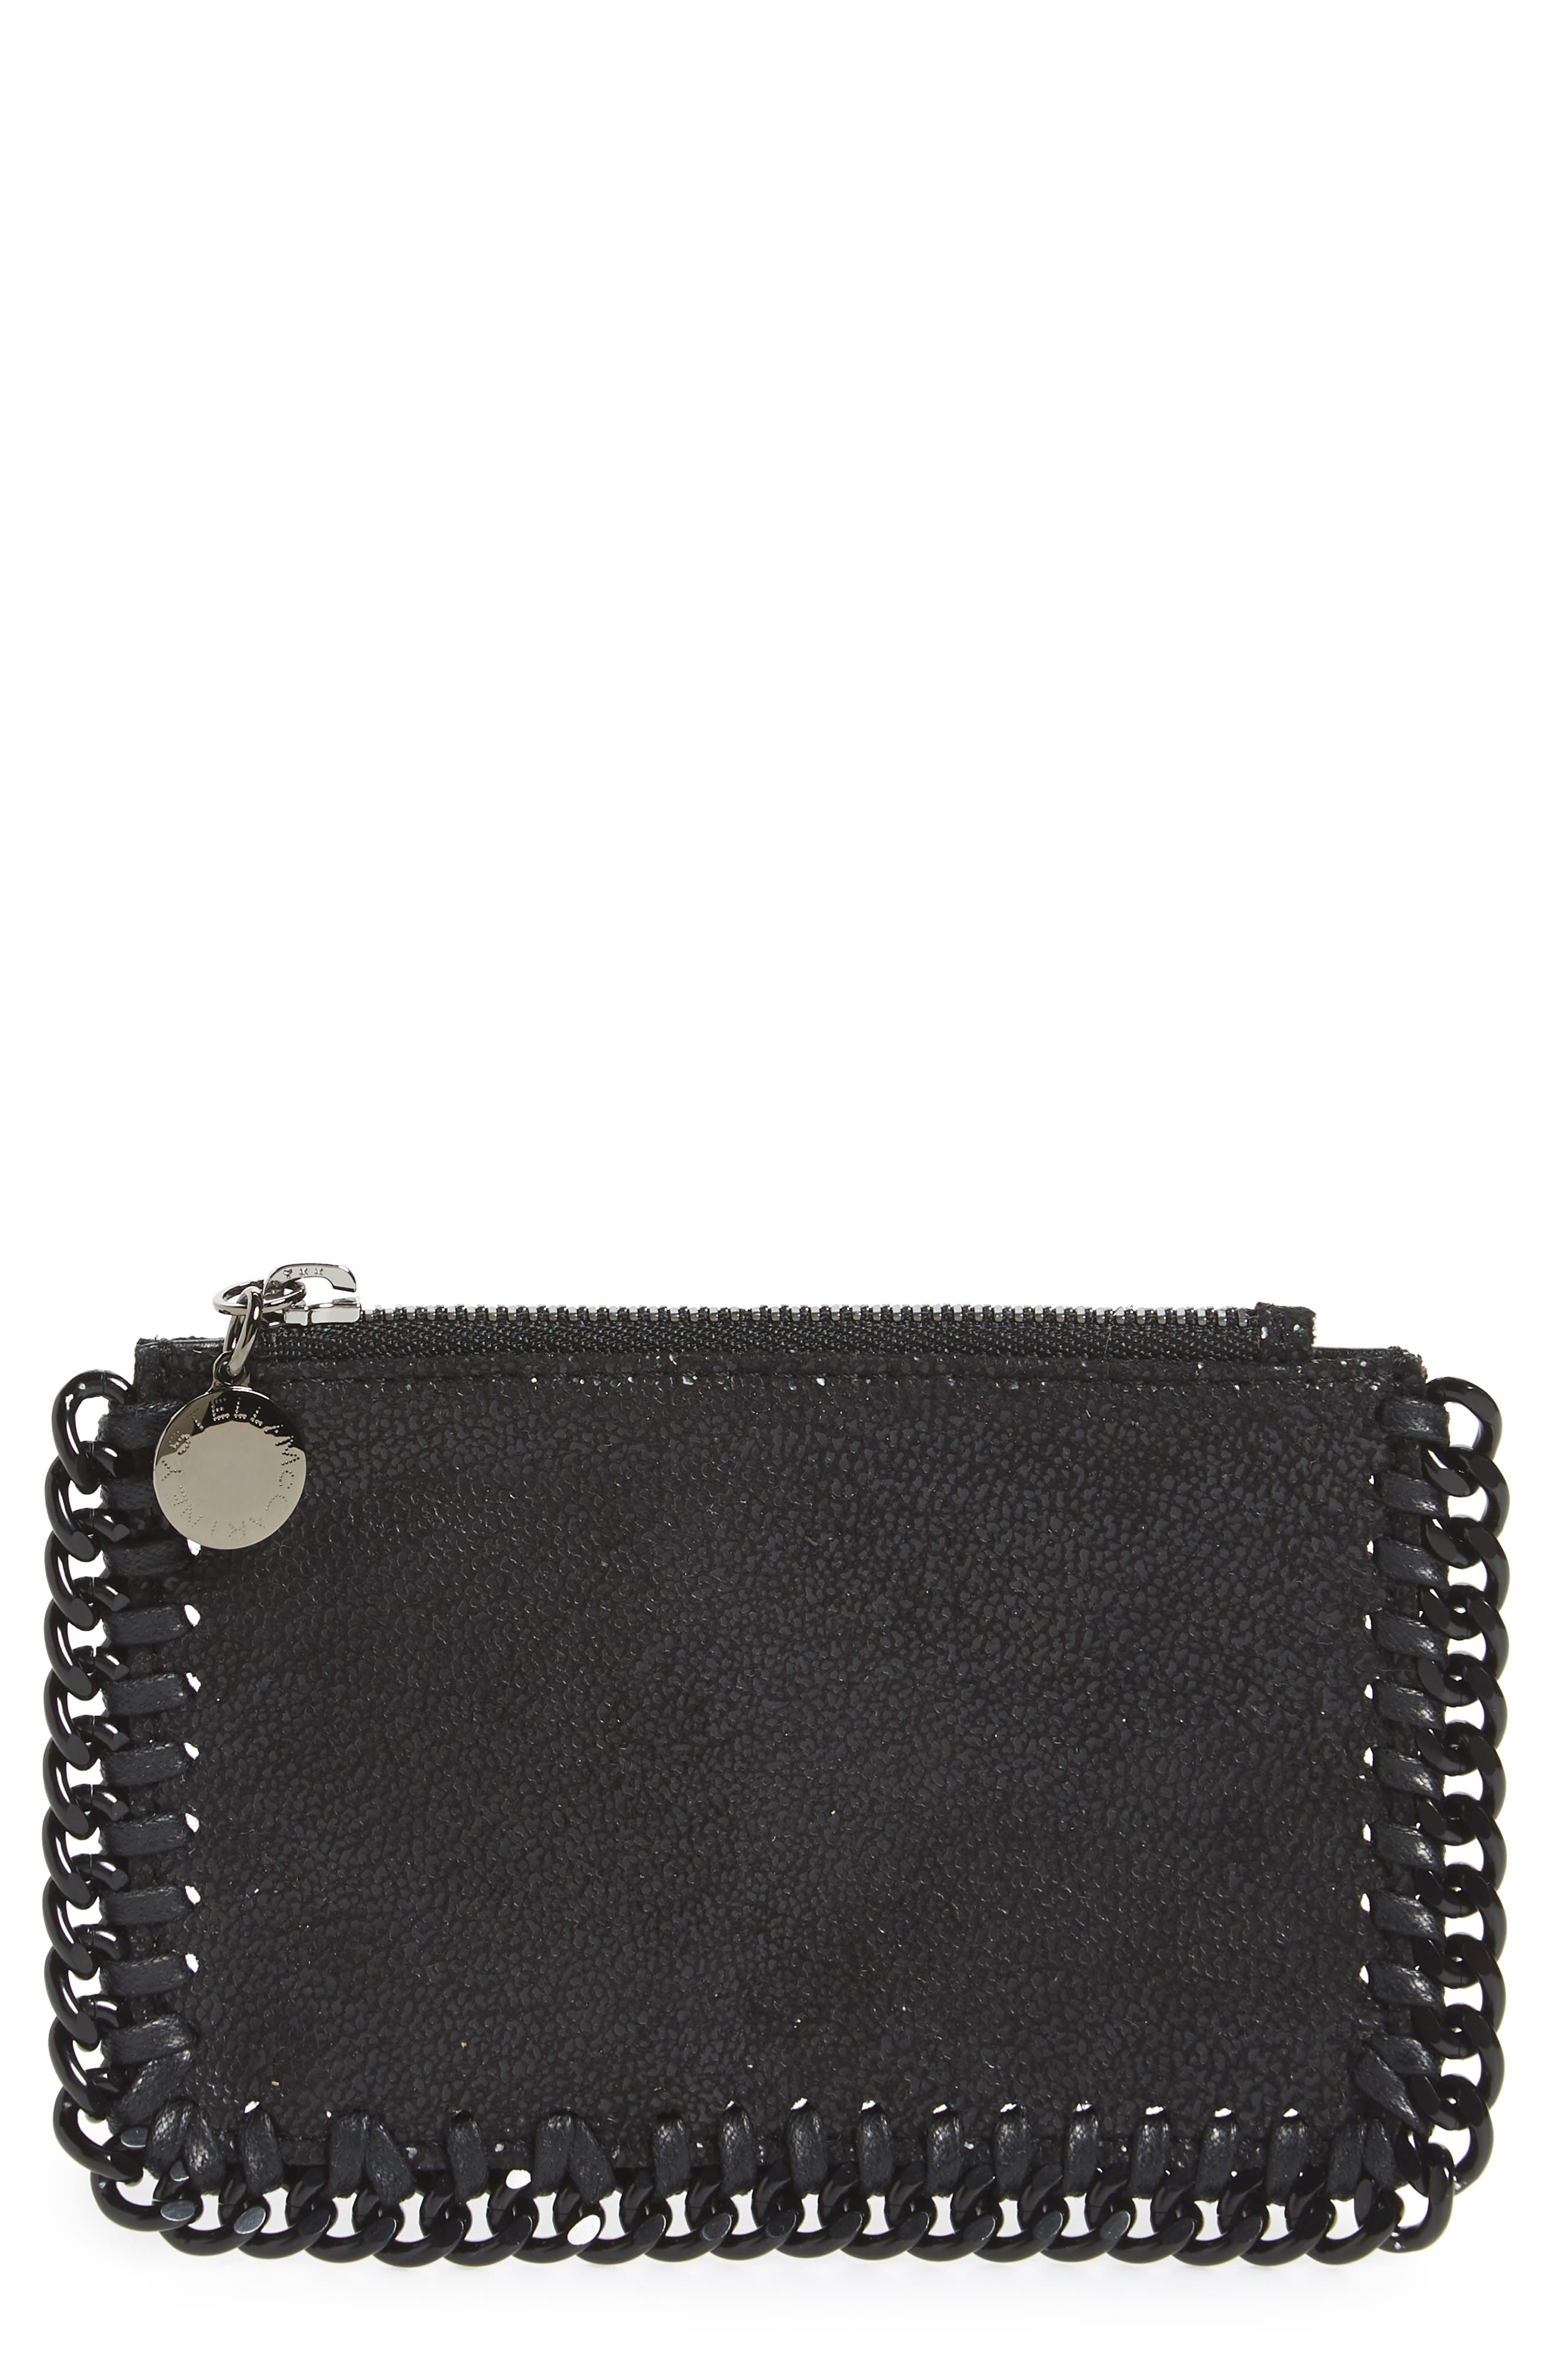 Stella McCartney Falabella Shaggy Deer Card Case